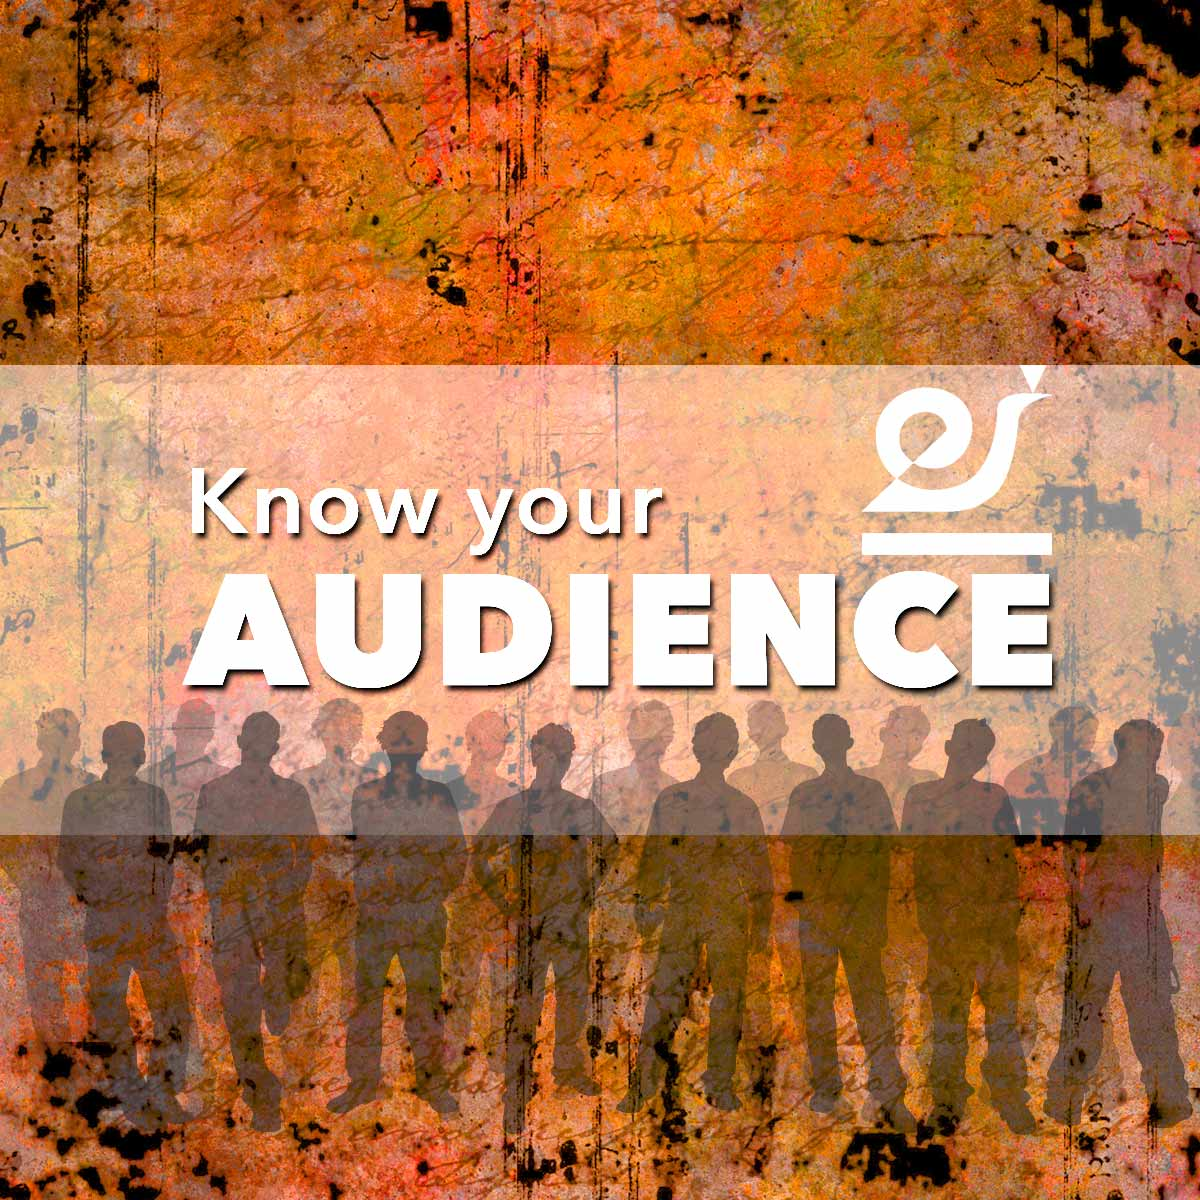 Know your audience, but don't expect everyone to always be paying attention.